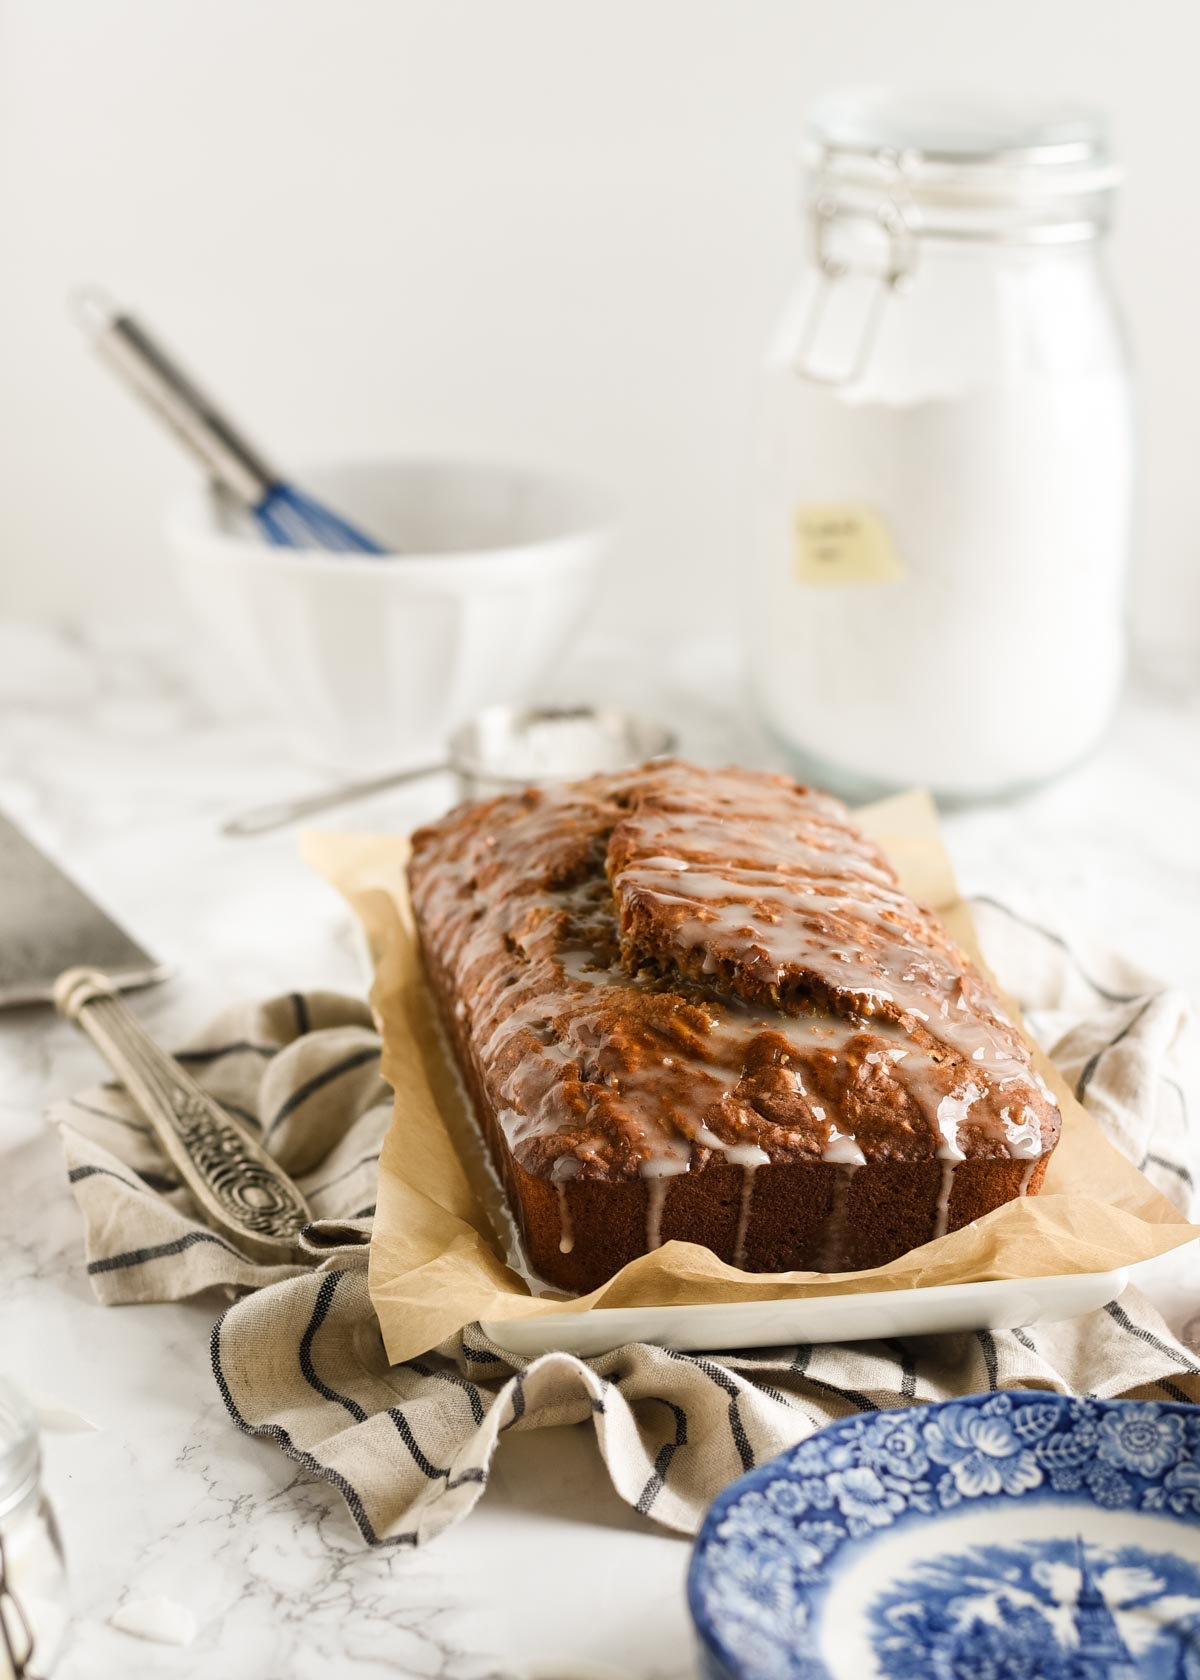 Glazed banana bread